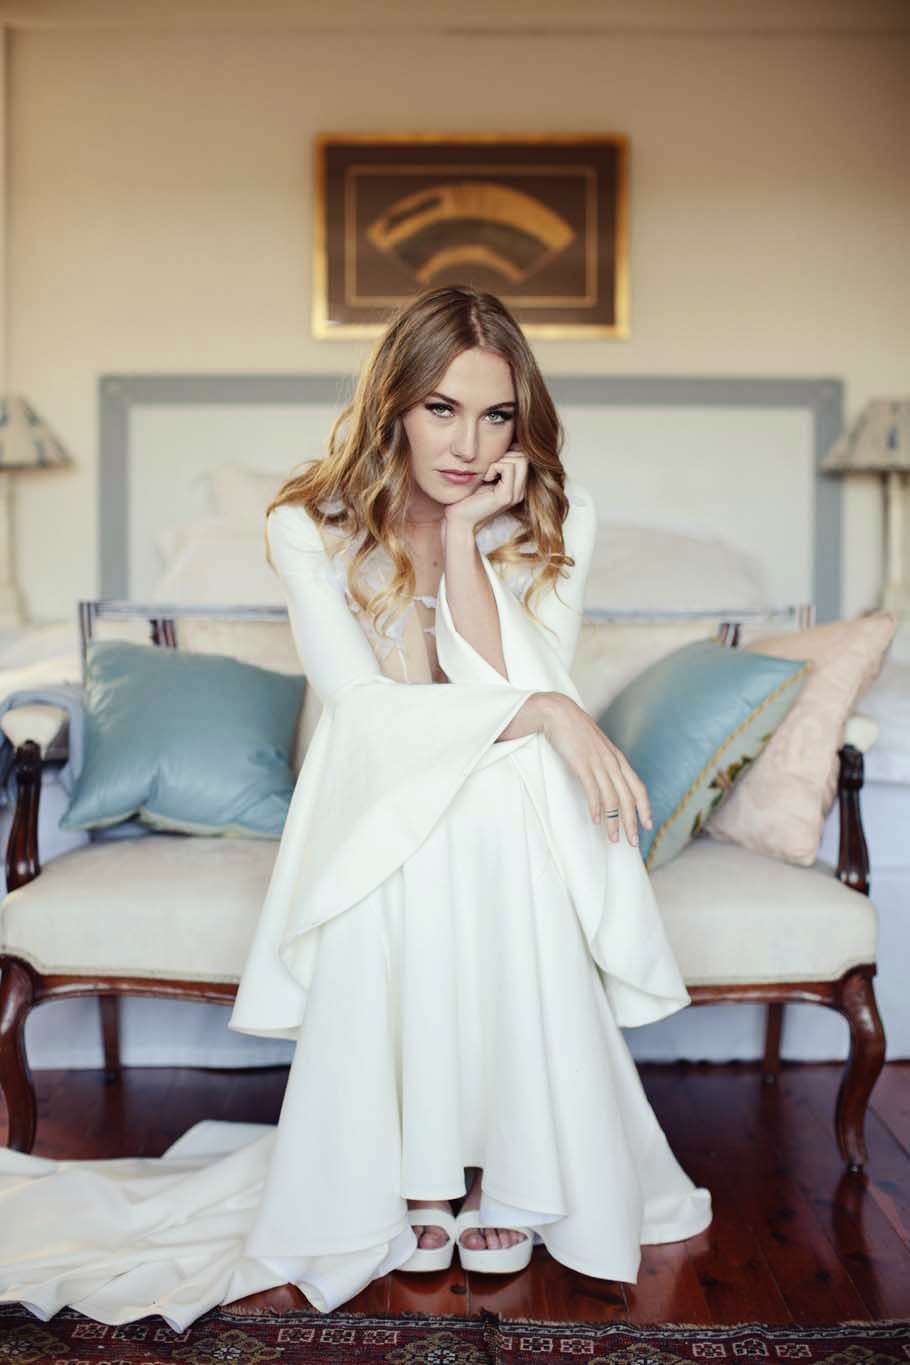 Woman in white dress with smouldering eyes